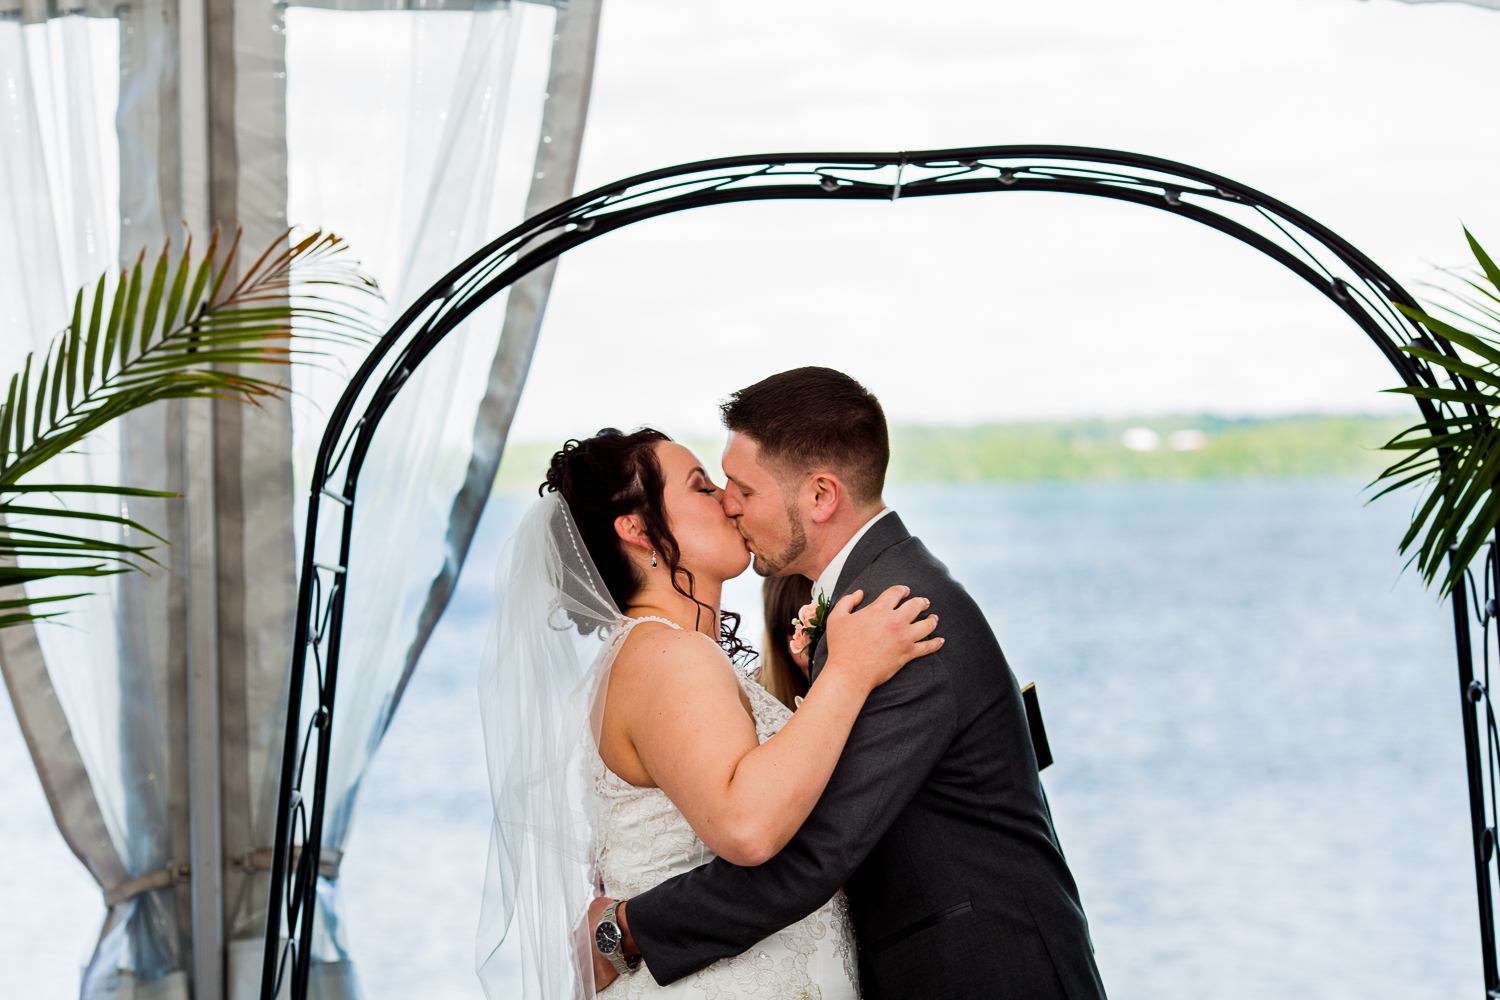 Bride and groom share first kiss.